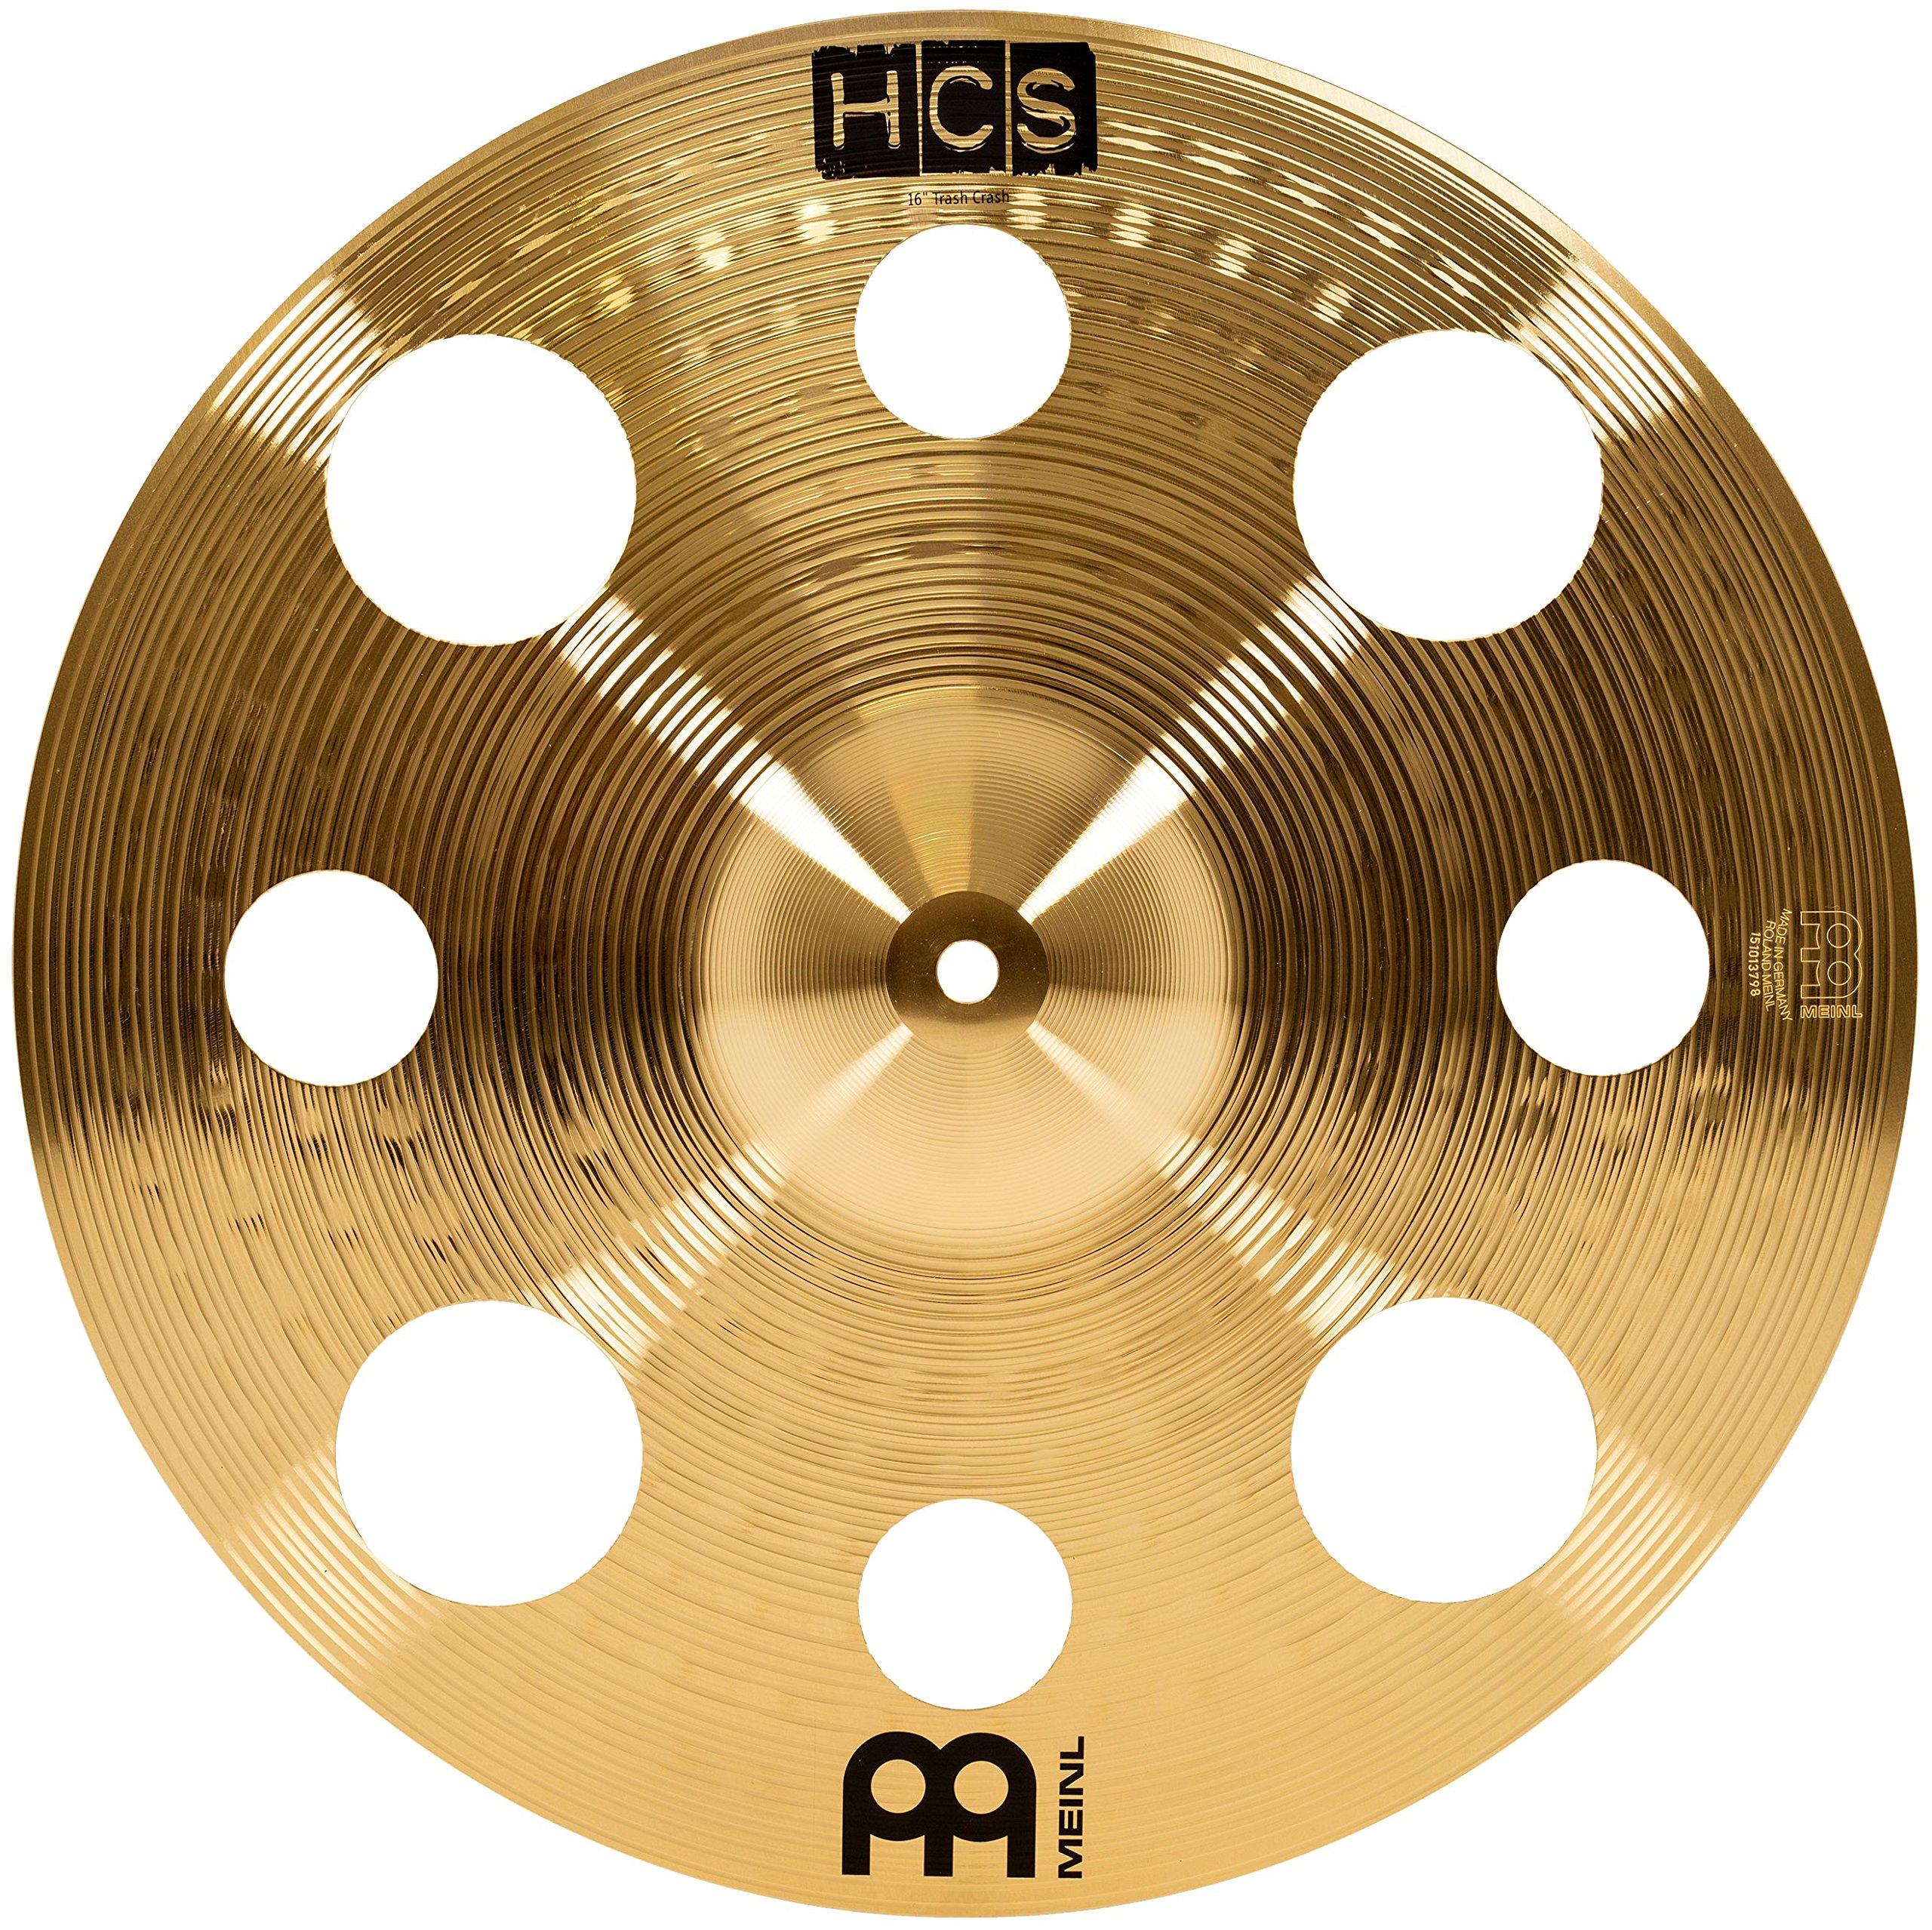 Meinl Cymbals HCS16TRC 16'' HCS Brass Trash Crash Cymbal for Drum Set (VIDEO) by Meinl Cymbals (Image #1)